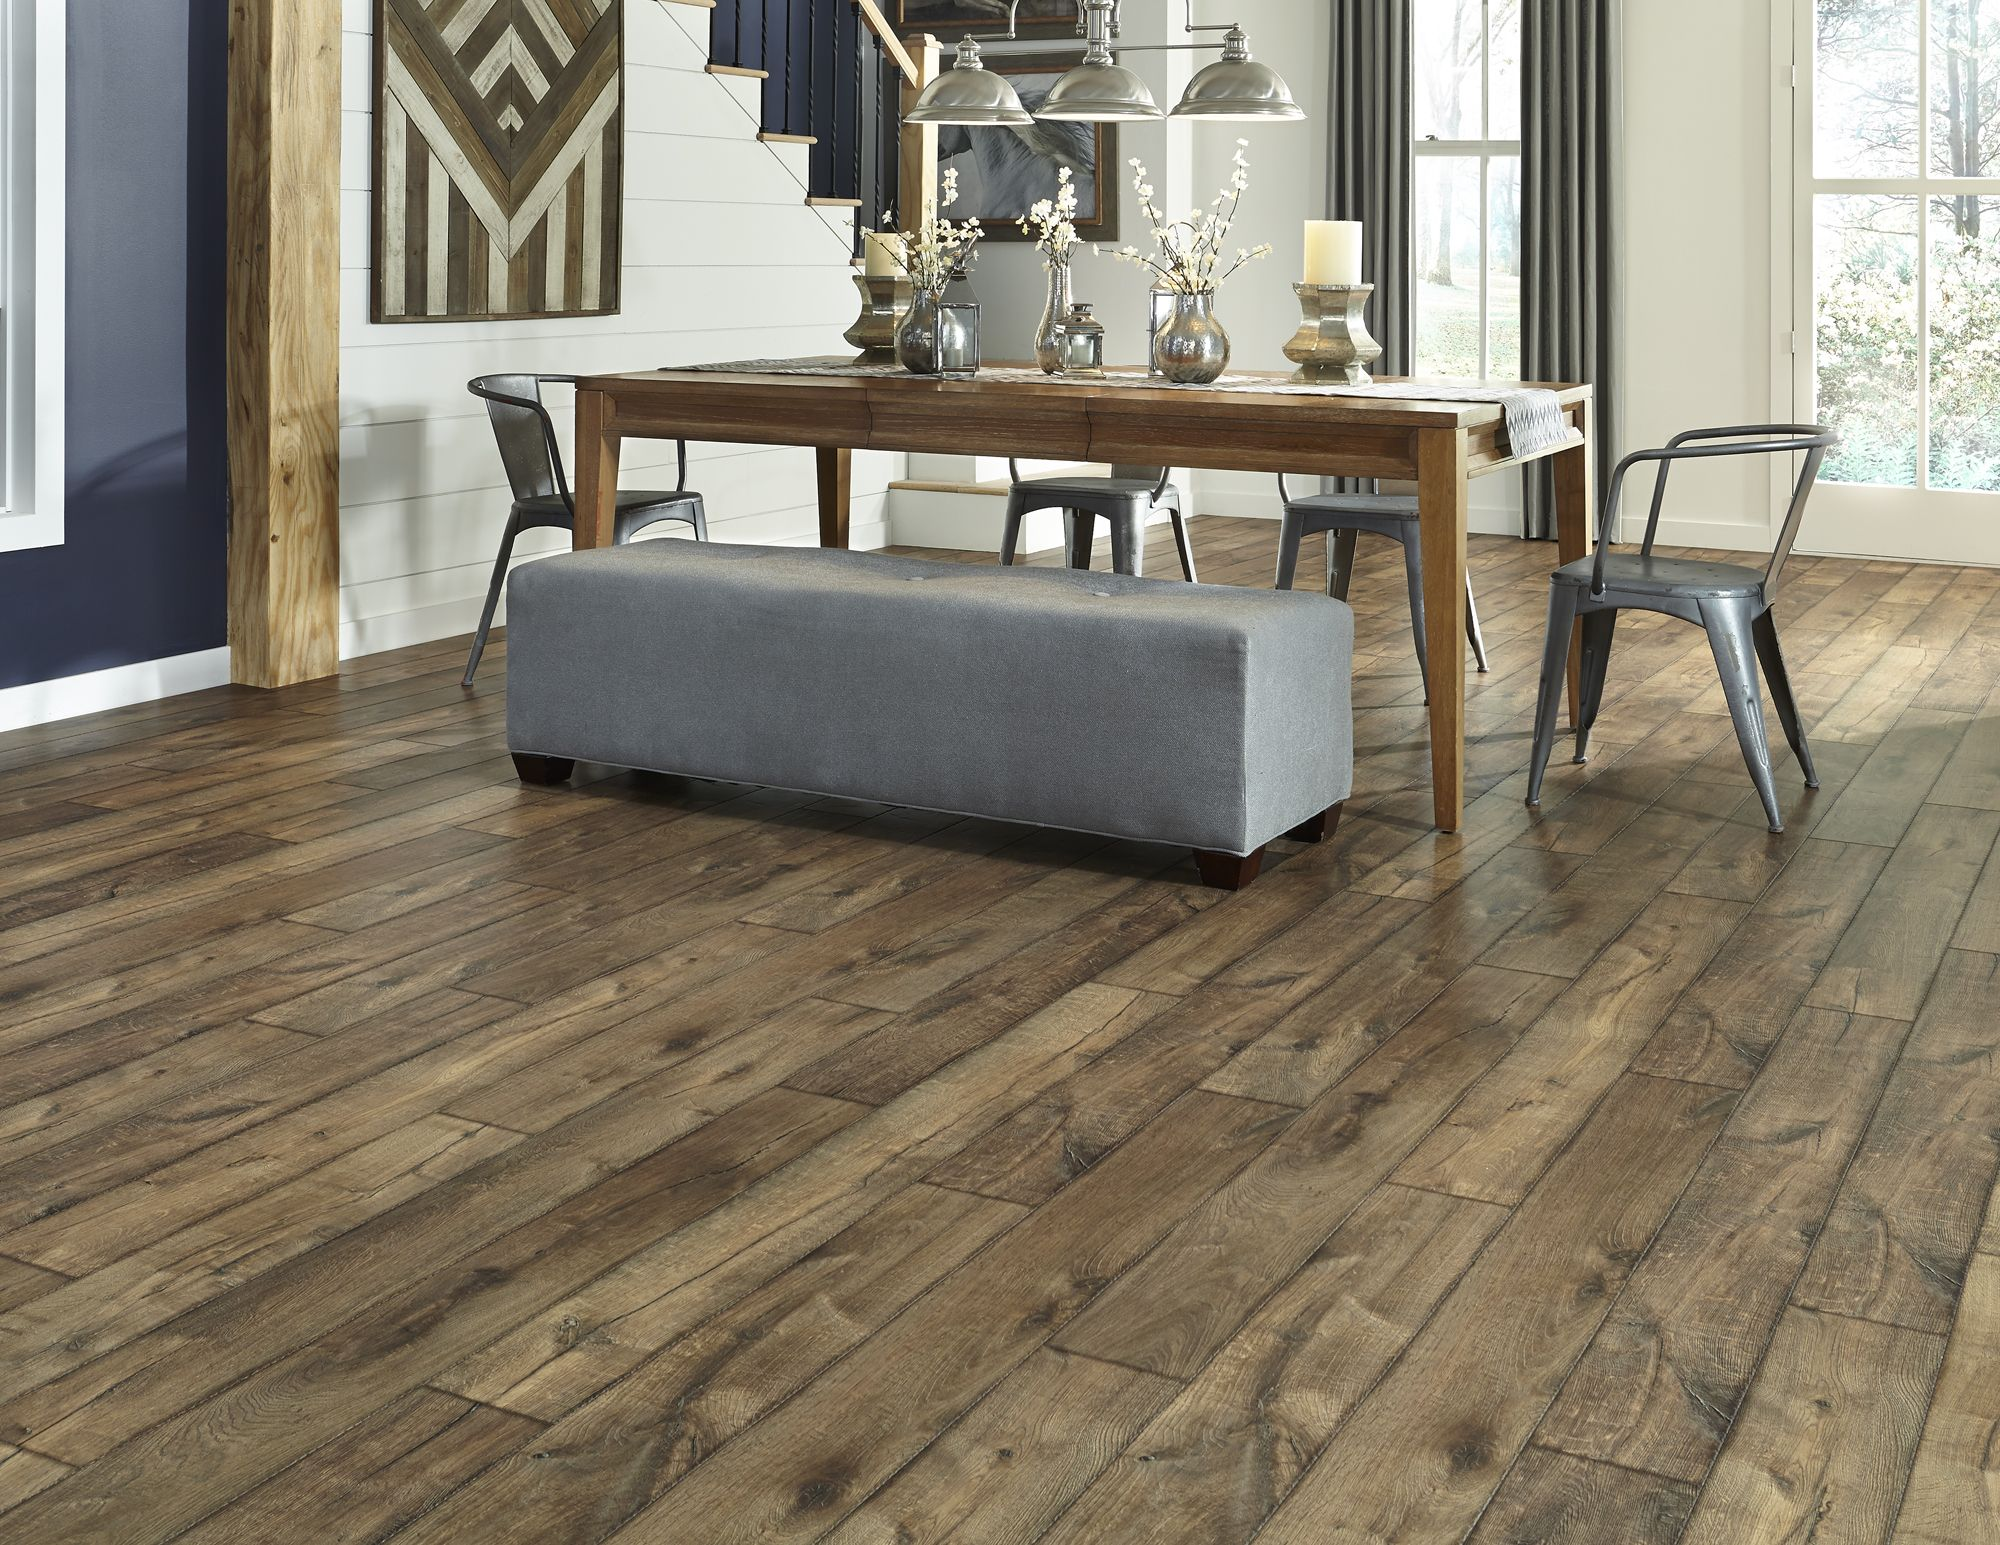 Antique Farmhouse Hickory A Dream Home Laminate With Gorgeous Rustic Feel